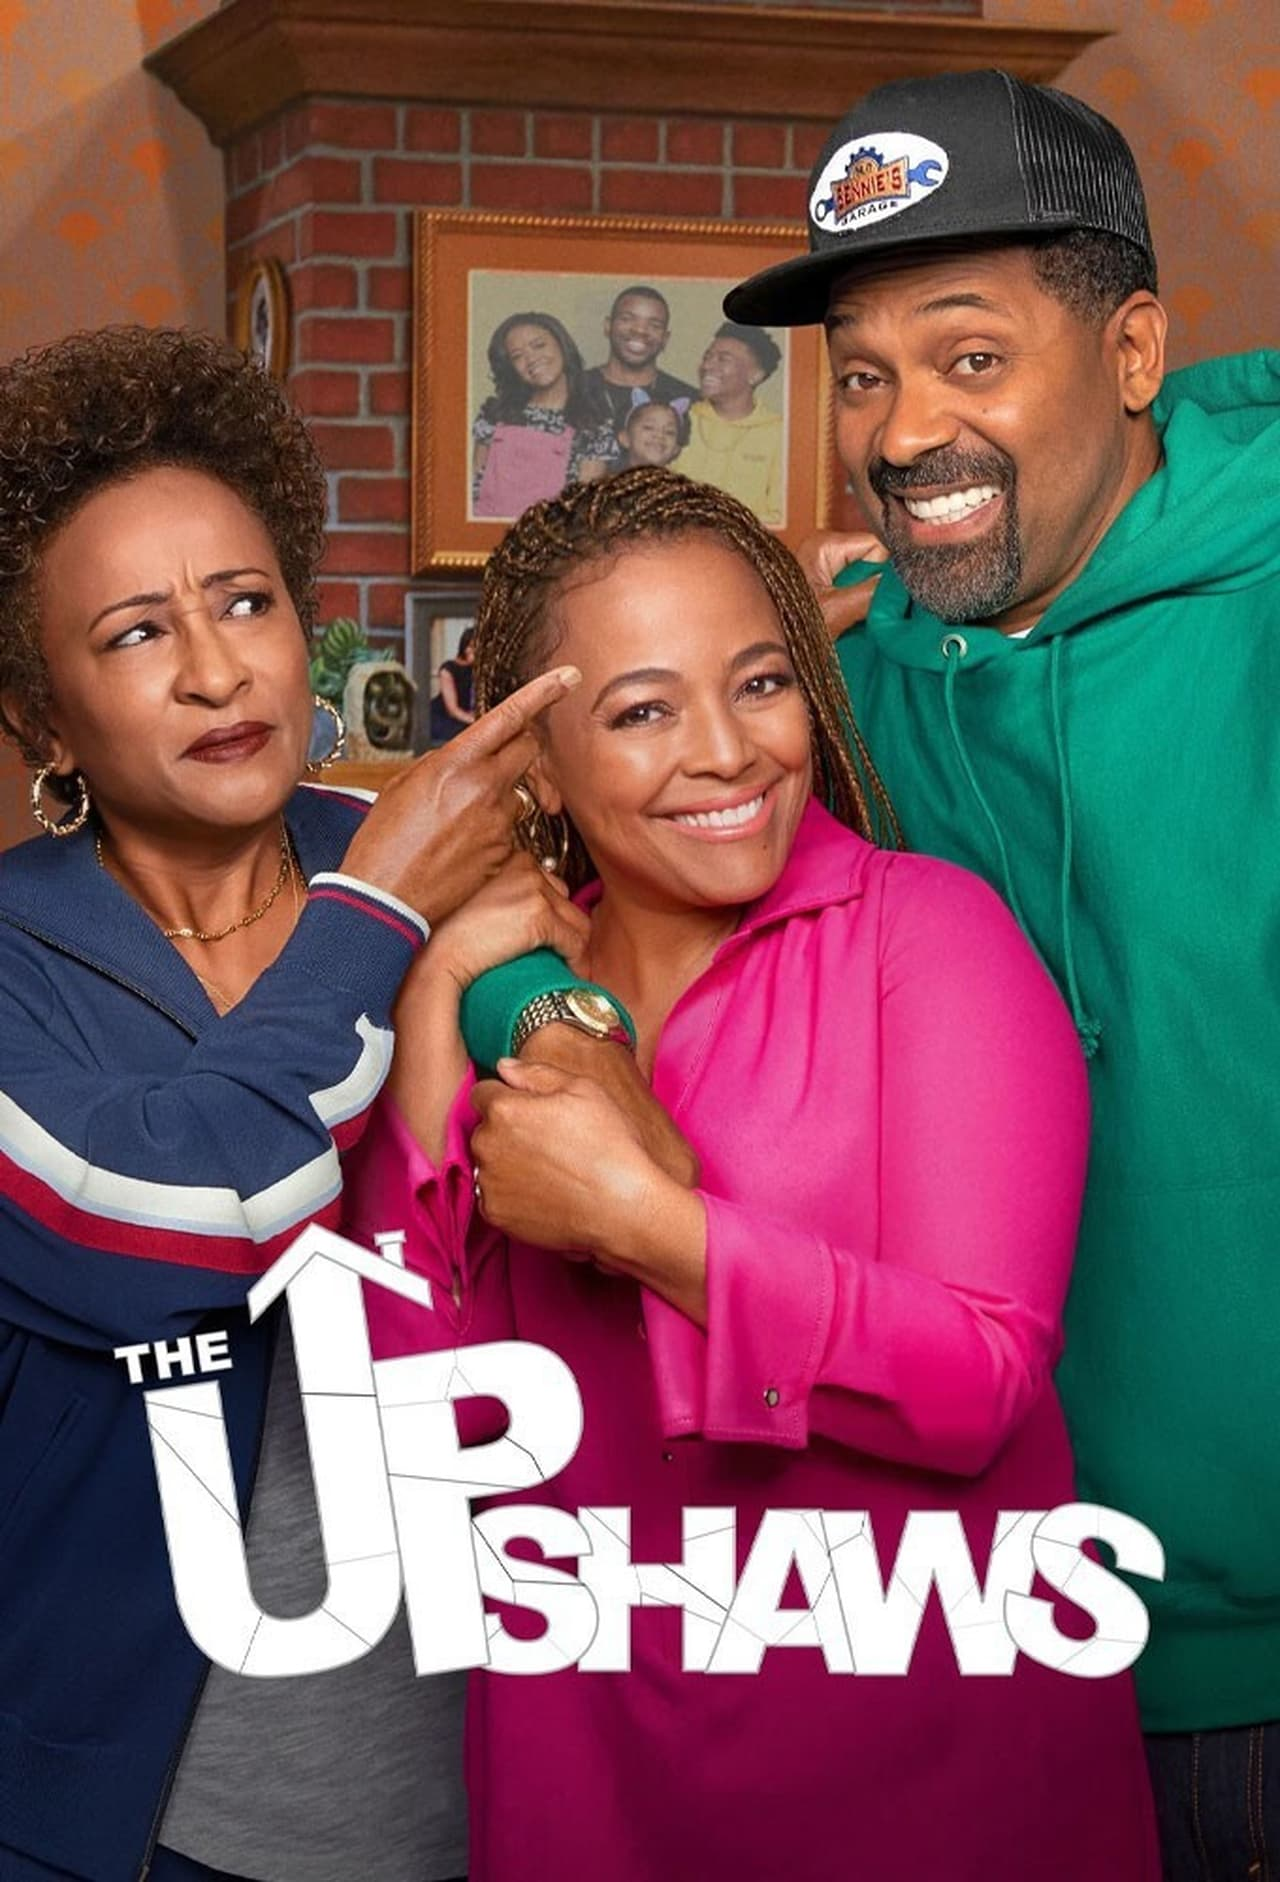 The Upshaws (season 1)